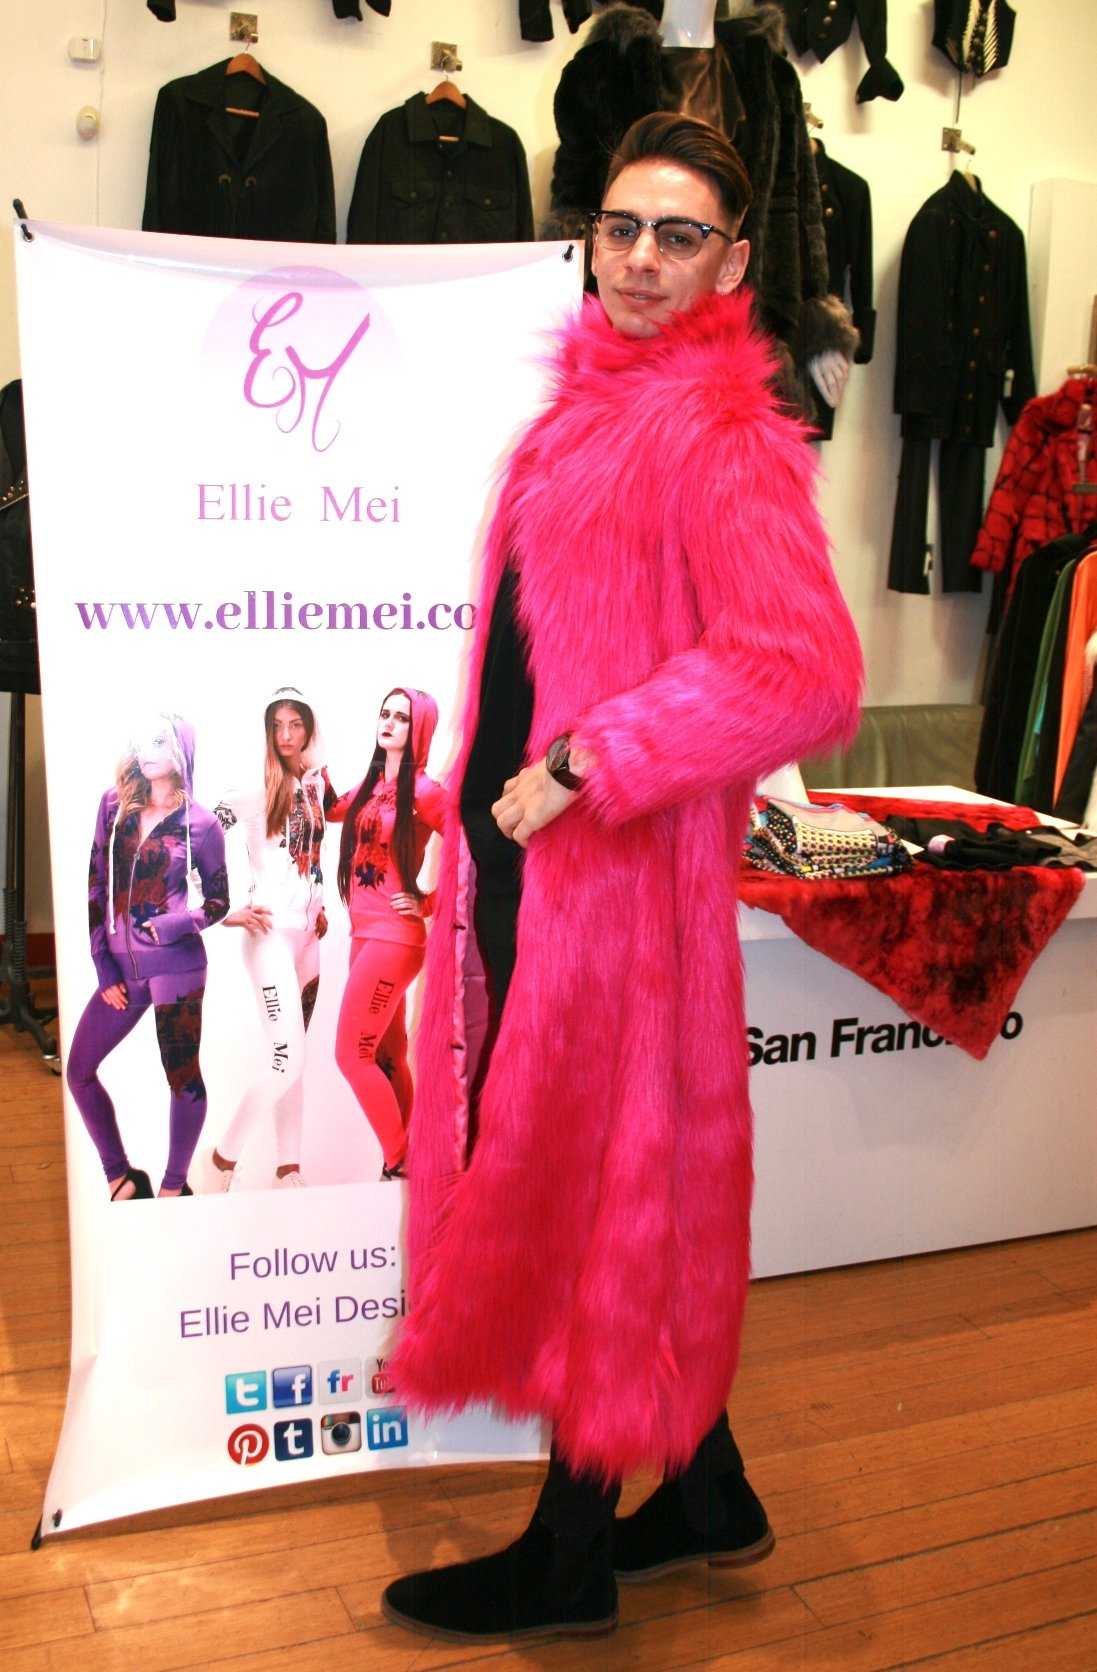 unisex faux fur coat hot pink unisex faux fur coat runway coat fashion show faux fur coat  hot pink faux fur jacketshopping the runway NYFW MLFW LAFW SFFW PFW LDFW JPFW USA brand designer store , long body faux fur coat christmas coat winter warm coat snow coat ski coat fur coat fashion show coat designer's coat unique black coat christmas gifts idea best birthday gift faux fur coat cheap luxury faux fur coat women's faux fur coat plus size full length faux fur coat faux fur coat wedding faux fox fur coat